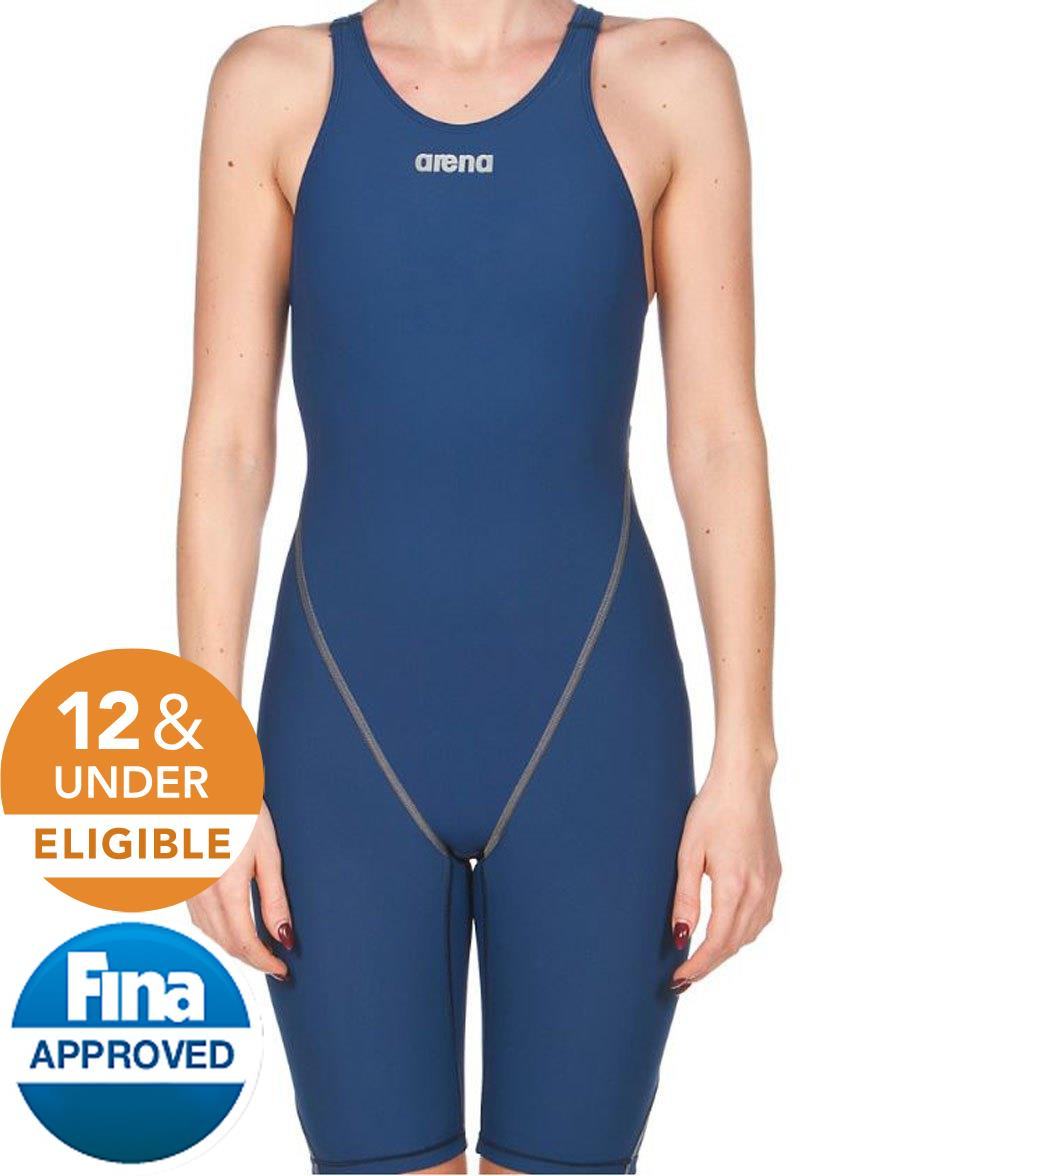 Arena Women's Powerskin ST 2.0 Tech Suit Swimsuit